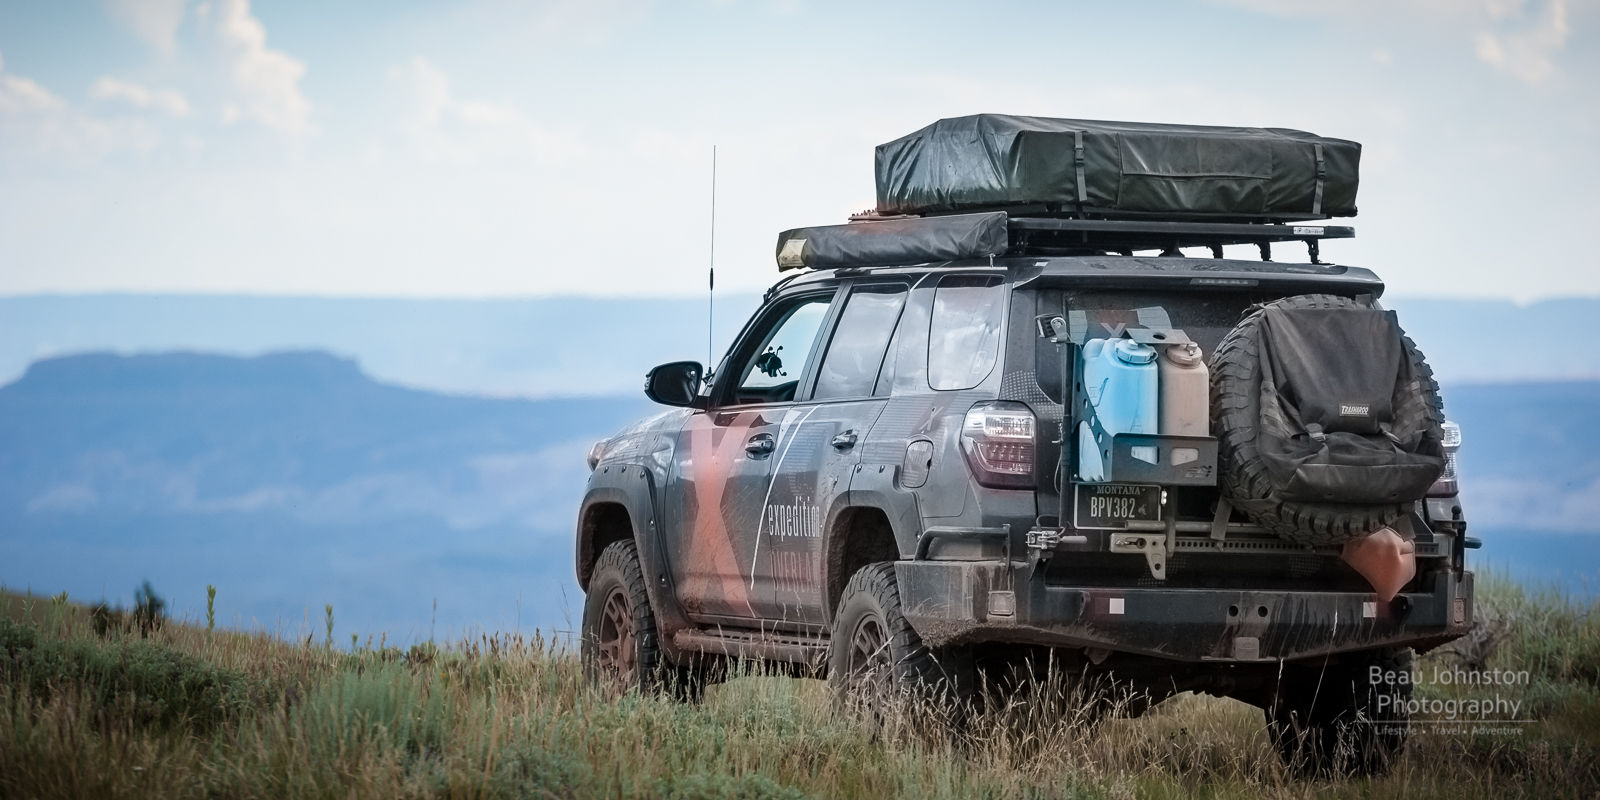 American Expedition Vehicles >> Expedition Overland is heading to South America